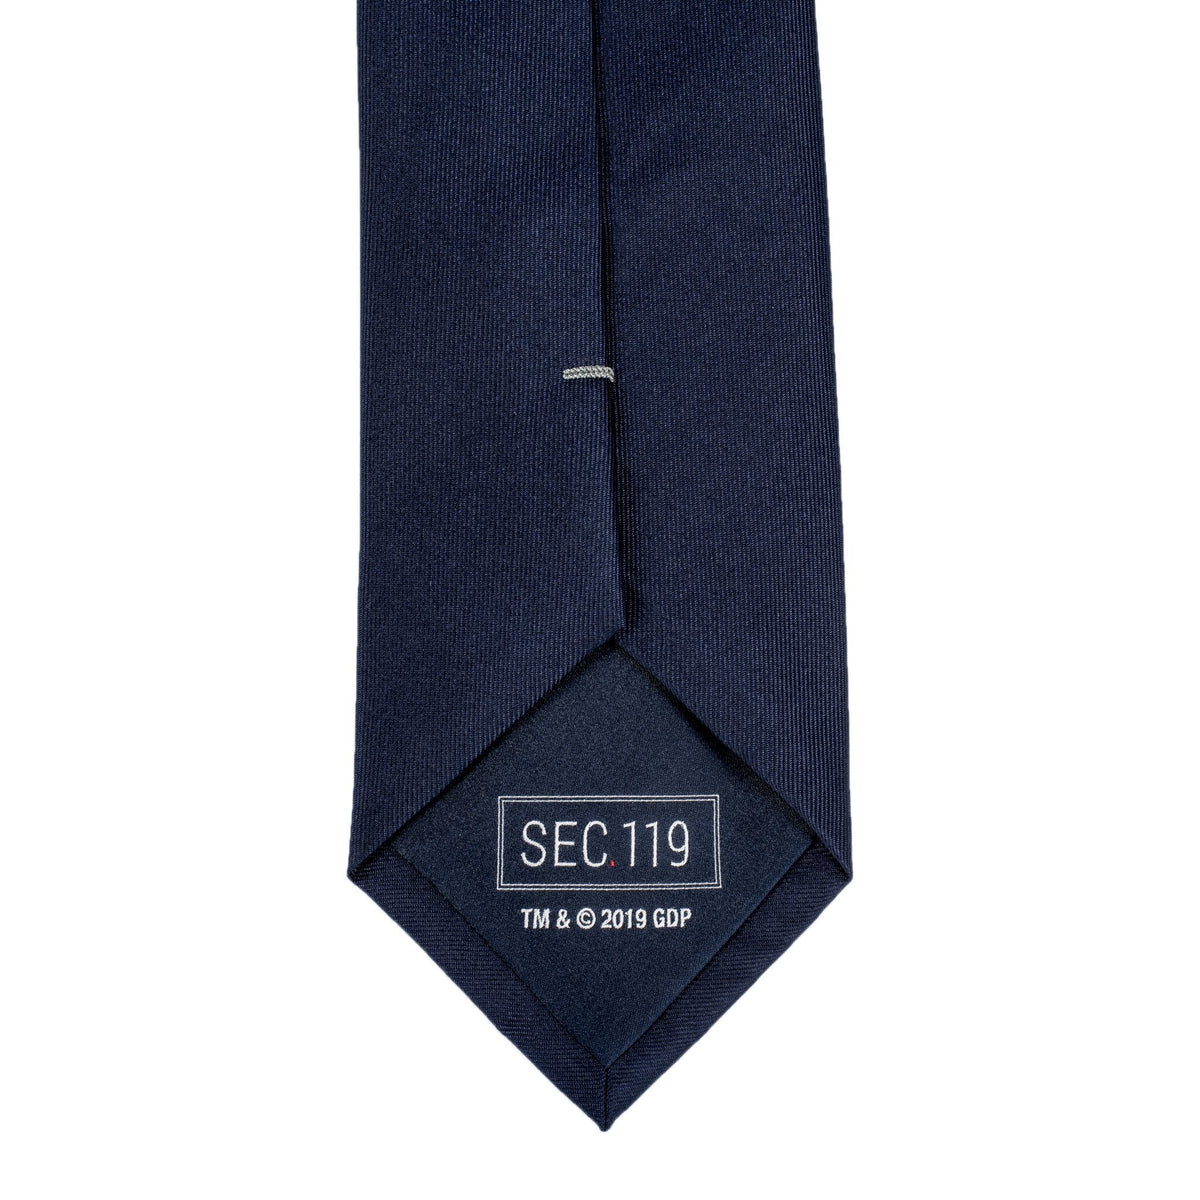 Grateful Dead 13 Bolt Navy Tie - Section 119